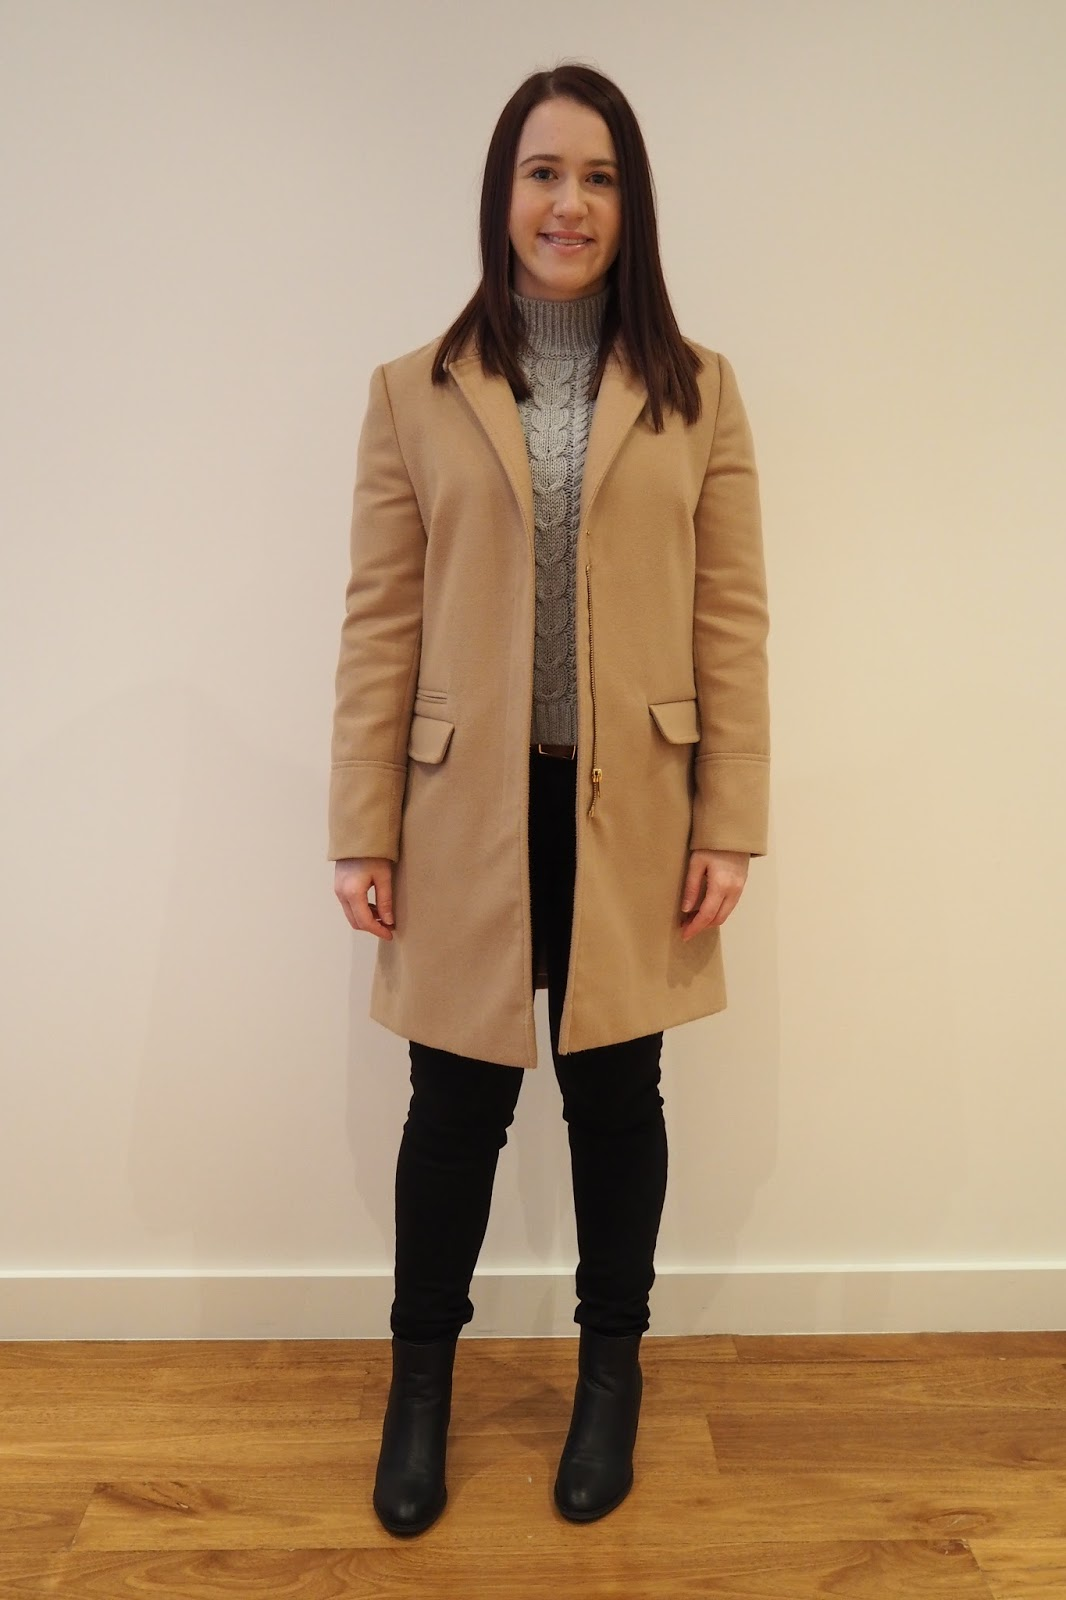 winter outfit, fall outfit, grey knit, camel coat outfit, camel coat, black jeans, black ankle boots, michael kors watch